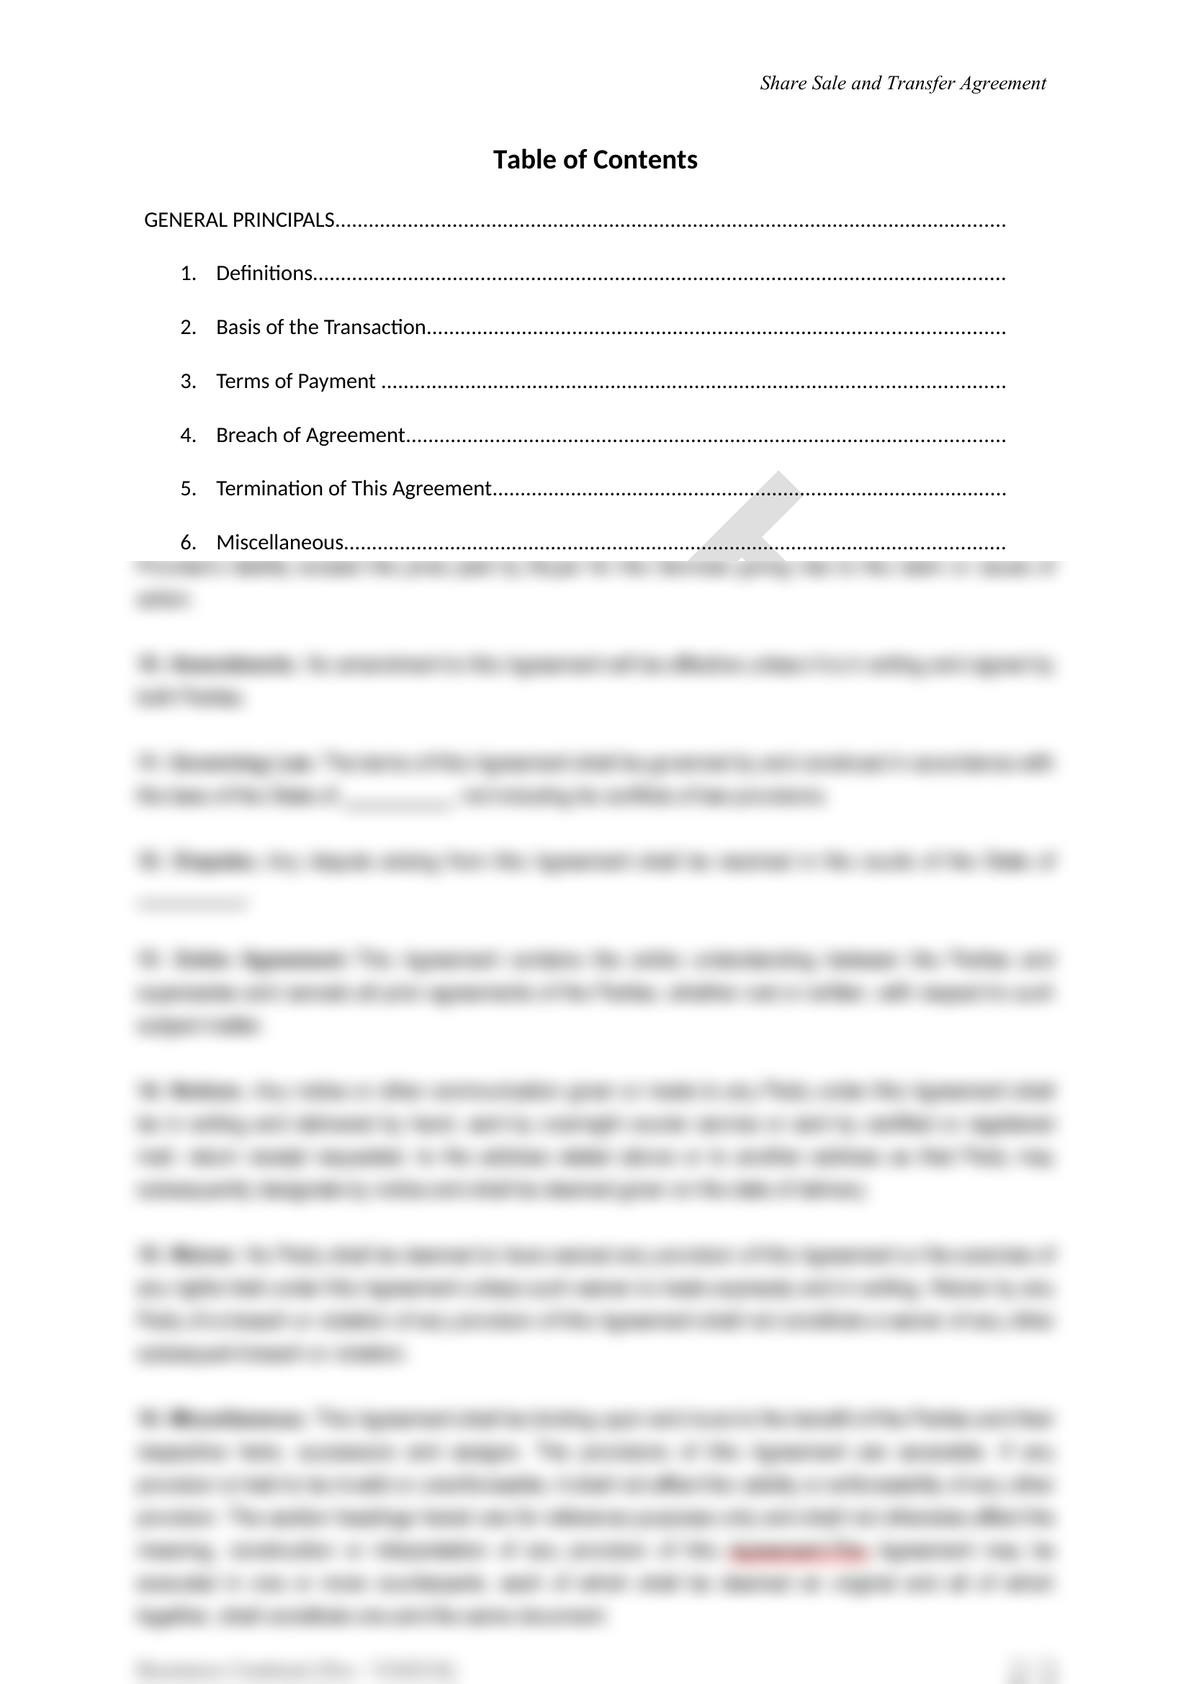 Share Sale and Purchase Agreement in Mongolia-1